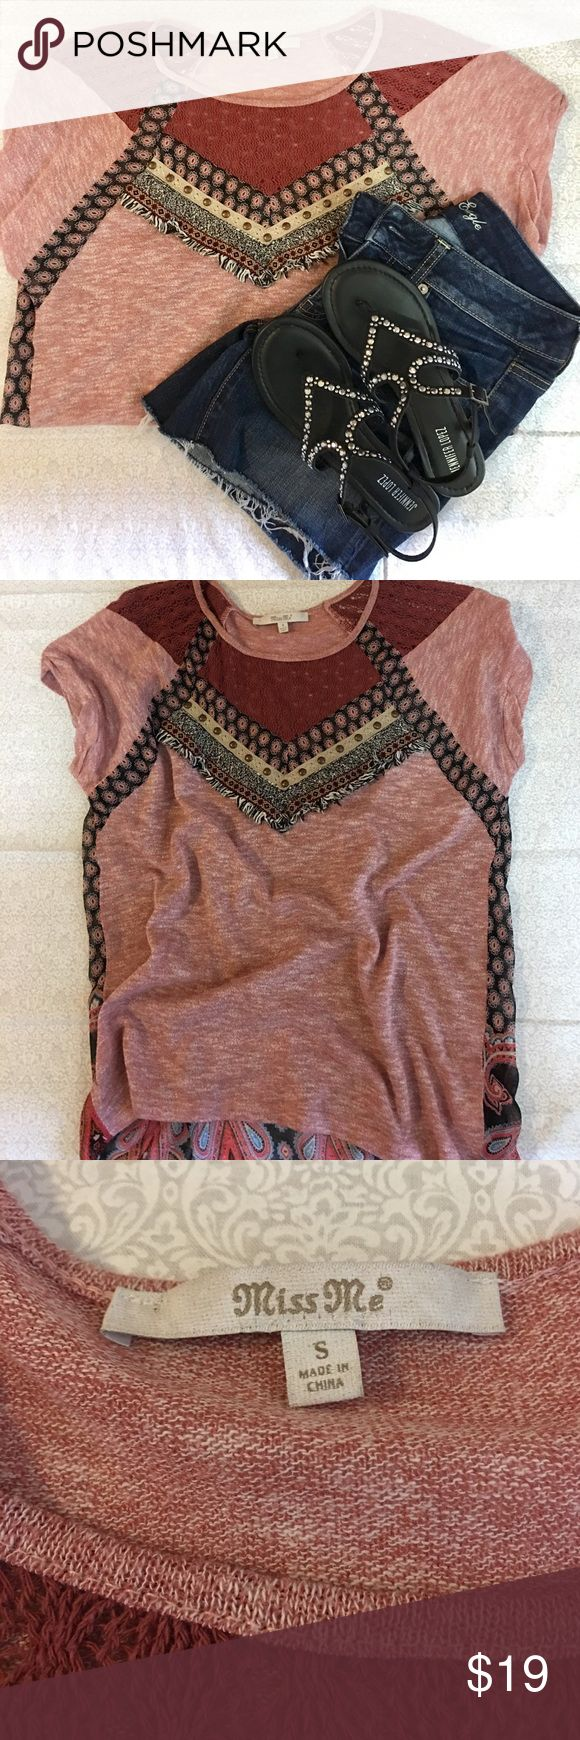 ⚡️2 Day Sale⚡️Miss Me Brand Pretty Top Pretty and flowy  size Small Miss Me Brand Top. In fantastic preowned condition, with no issues noted. Fast shipping, bundle and save! Miss Me Tops Blouses